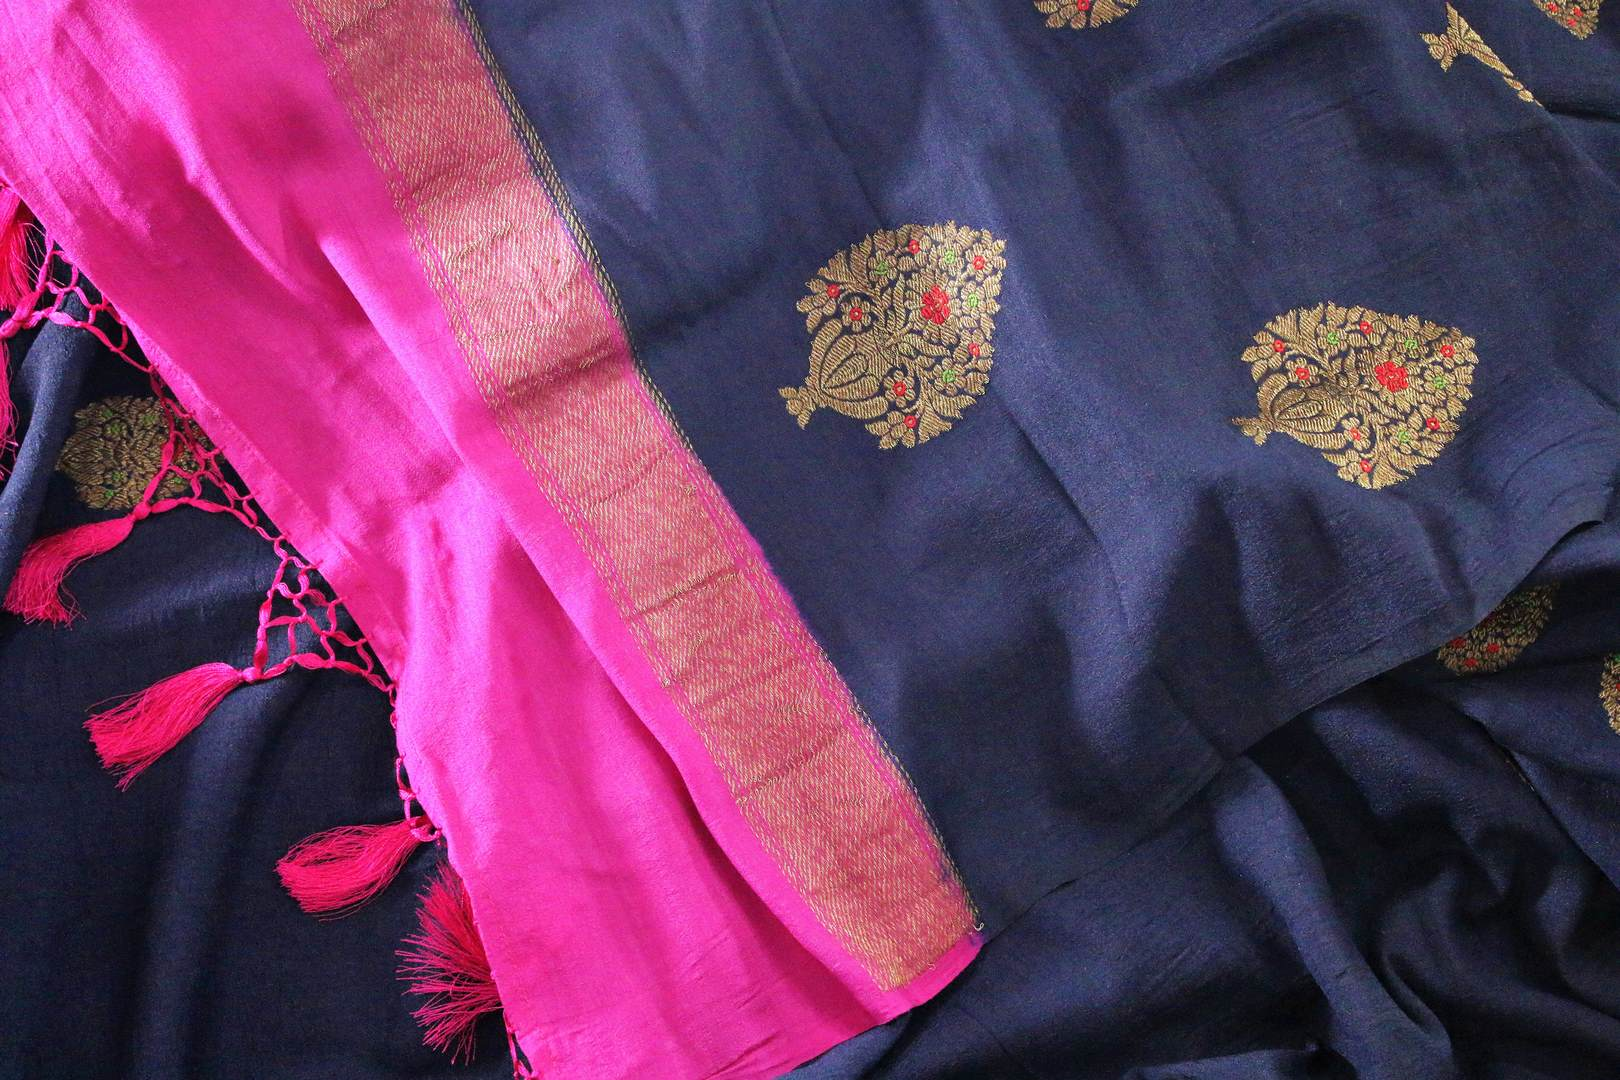 Dress up for weddings and special events in this royal blue designer muga banarsi silk sari with a stunning zari work. Style this glorious saree with a contrasting pink blouse complemented with a pink border on the heavily embroidered pallu to turn heads. Shop designer sarees online or visit Pure Elegance store in USA.-details